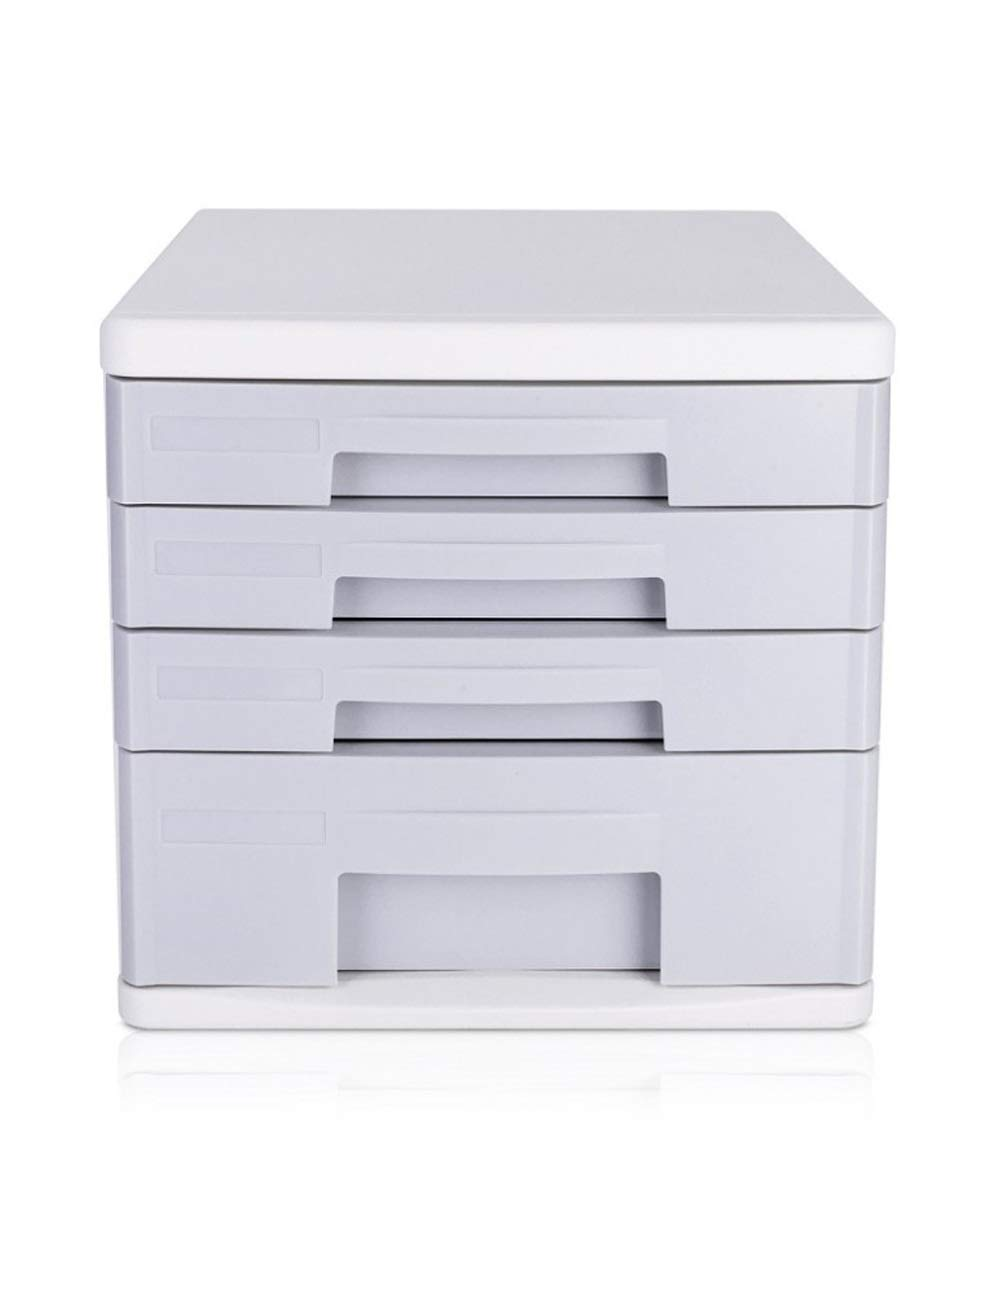 File Cabinet Ight Grey Desktop Drawer Type Stationery Cabinet 4th Floor A4 Plastic Data Cabinet Storage Box Storage Filing cabinets